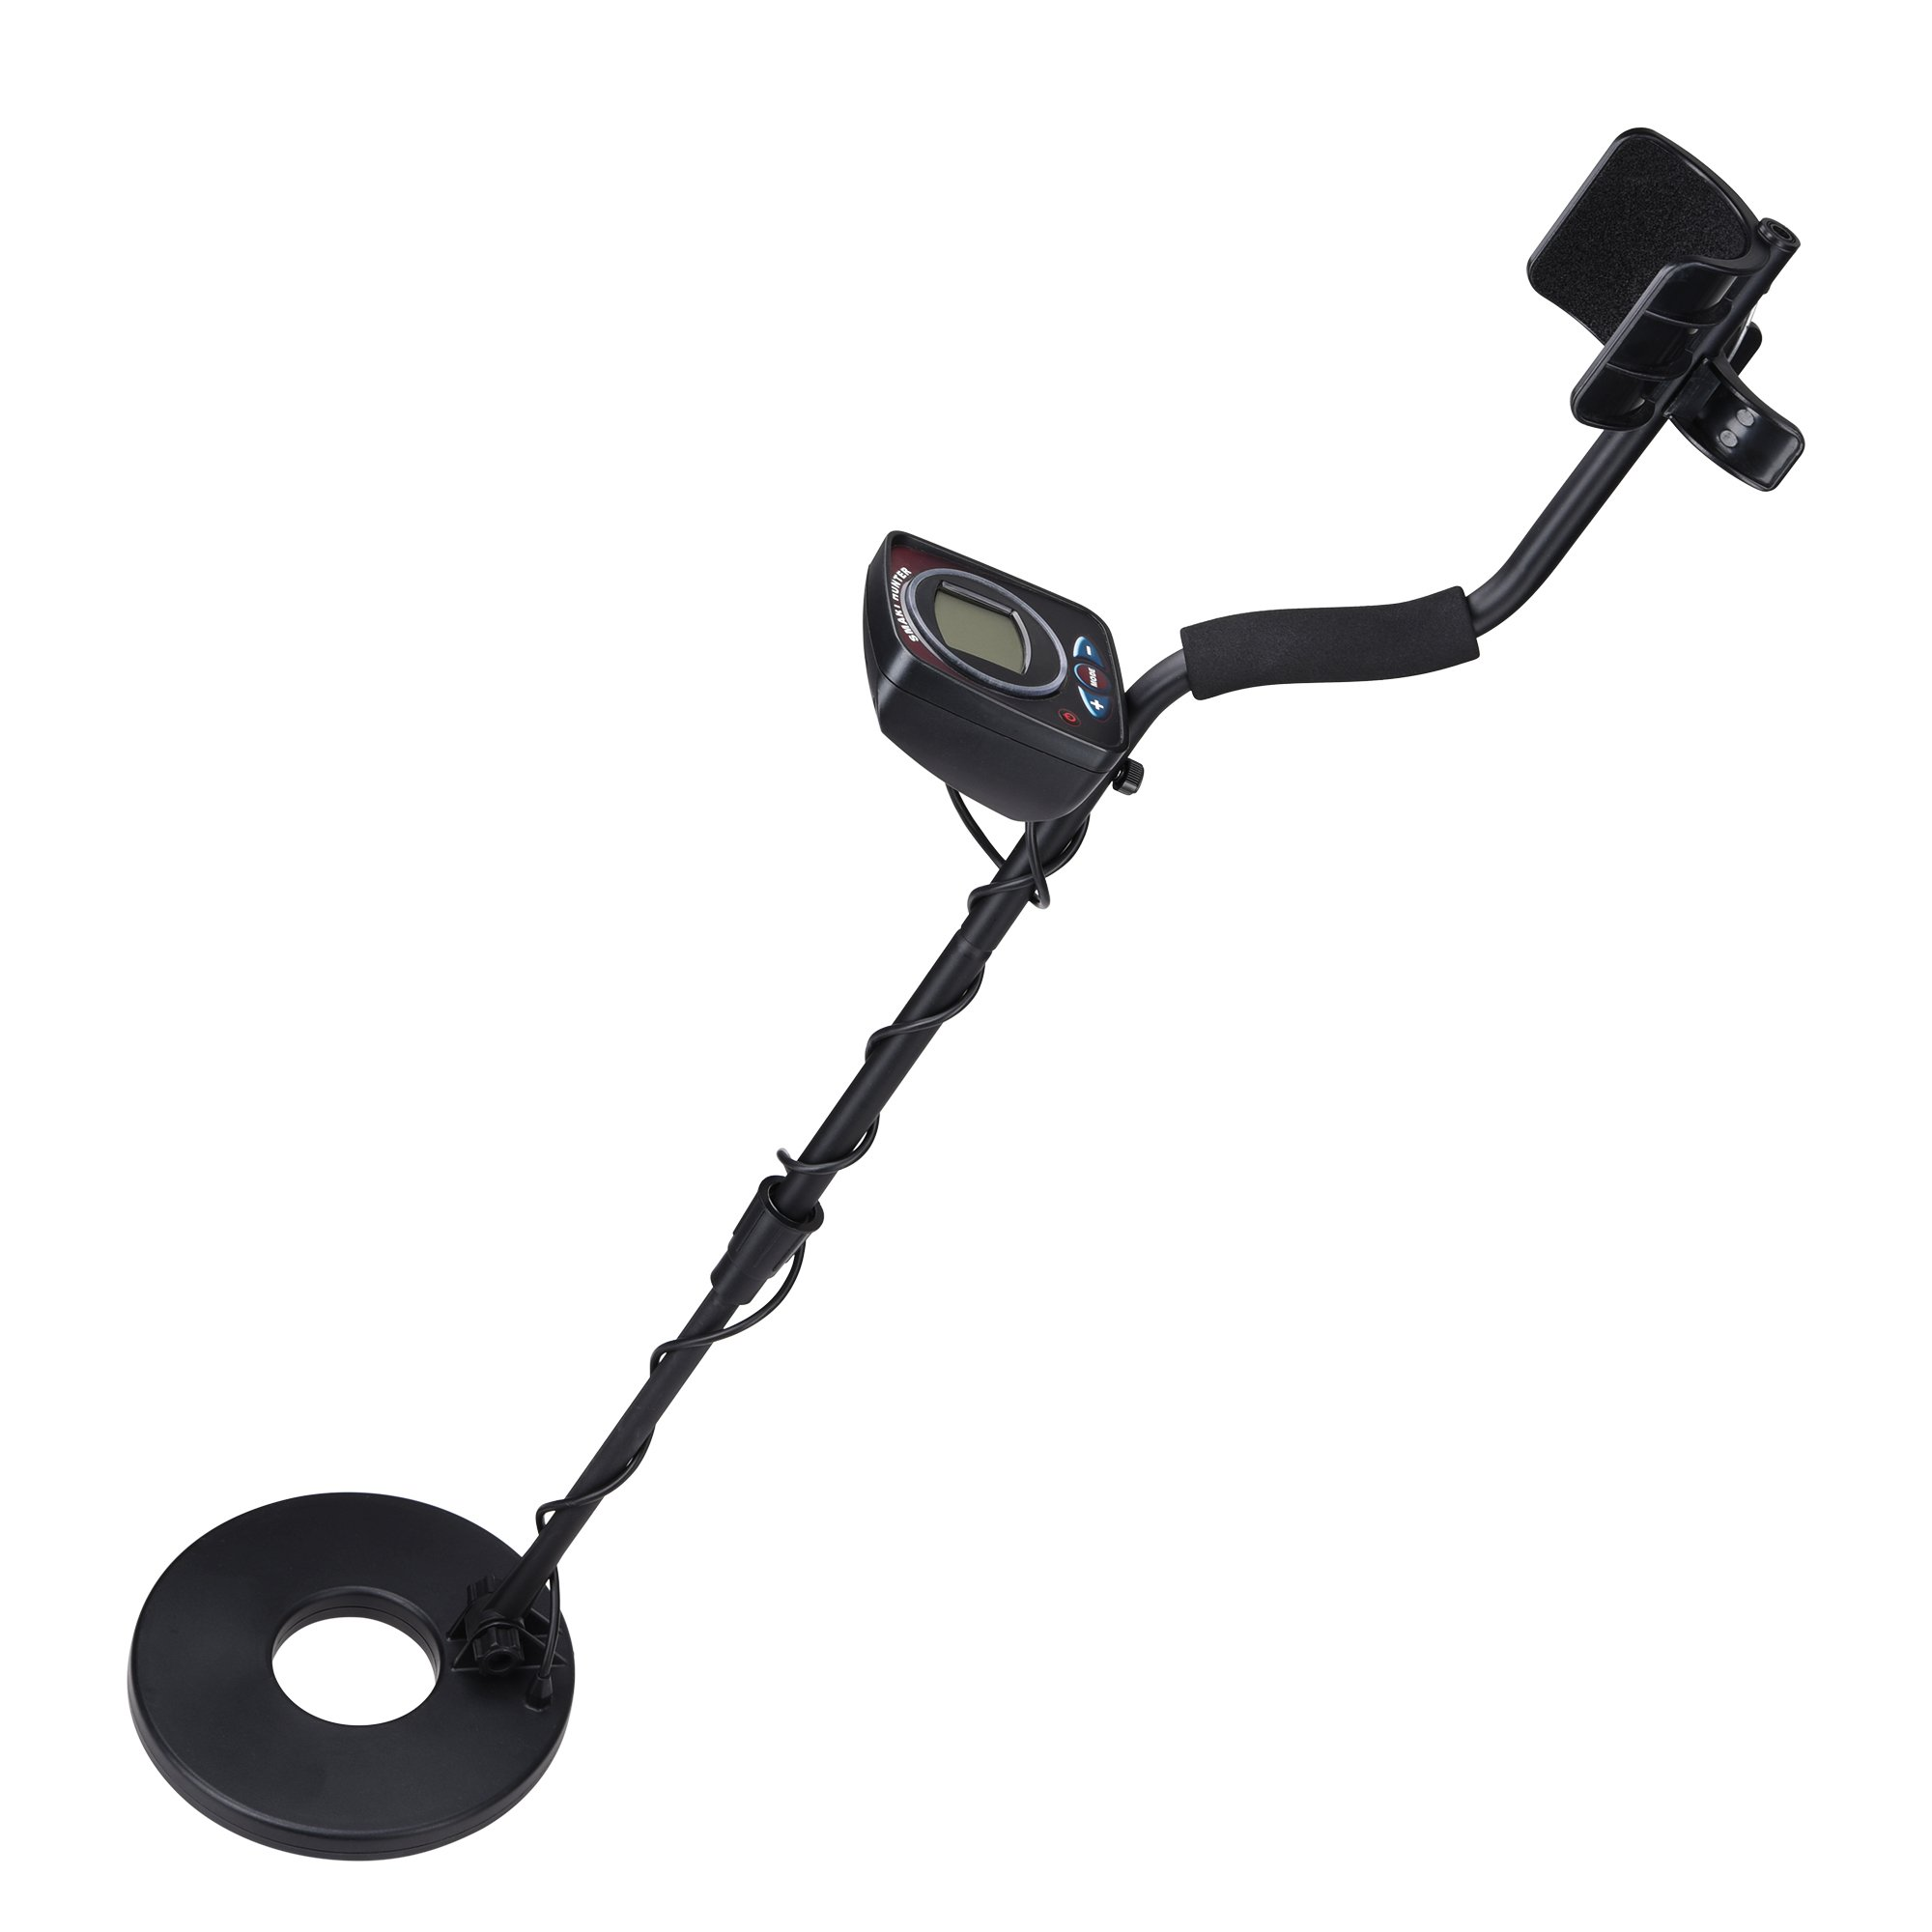 "AW LED Metal Detector 2 Modes Sensitive Search Waterproof 8-3/5"" Coil Accurate Gold Digger Treasure Hunter Finder"